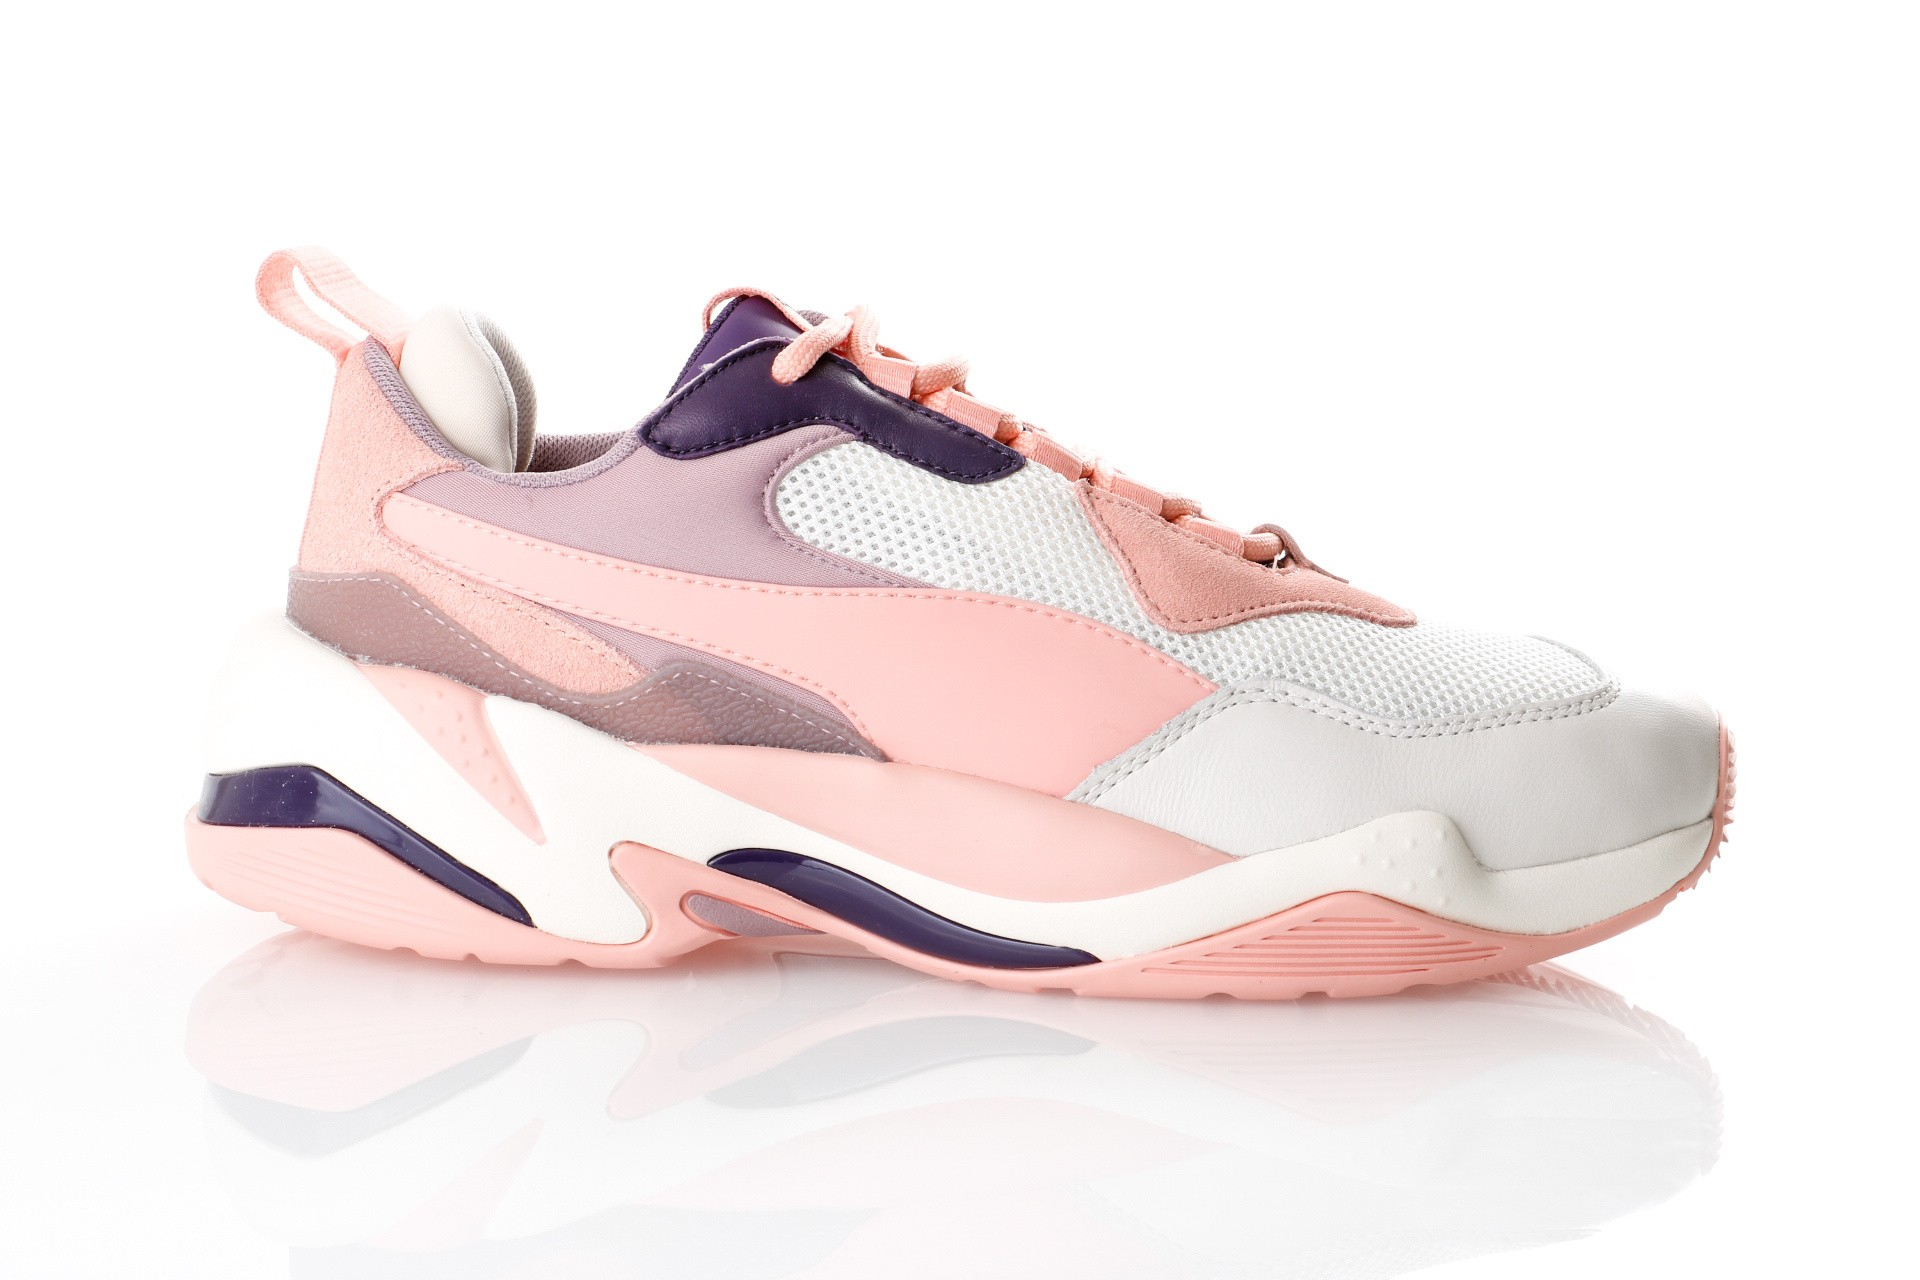 Afbeelding van Puma Thunder Spectra 367516 Sneakers Marshmallow-Peach Bud 1cd408dd2